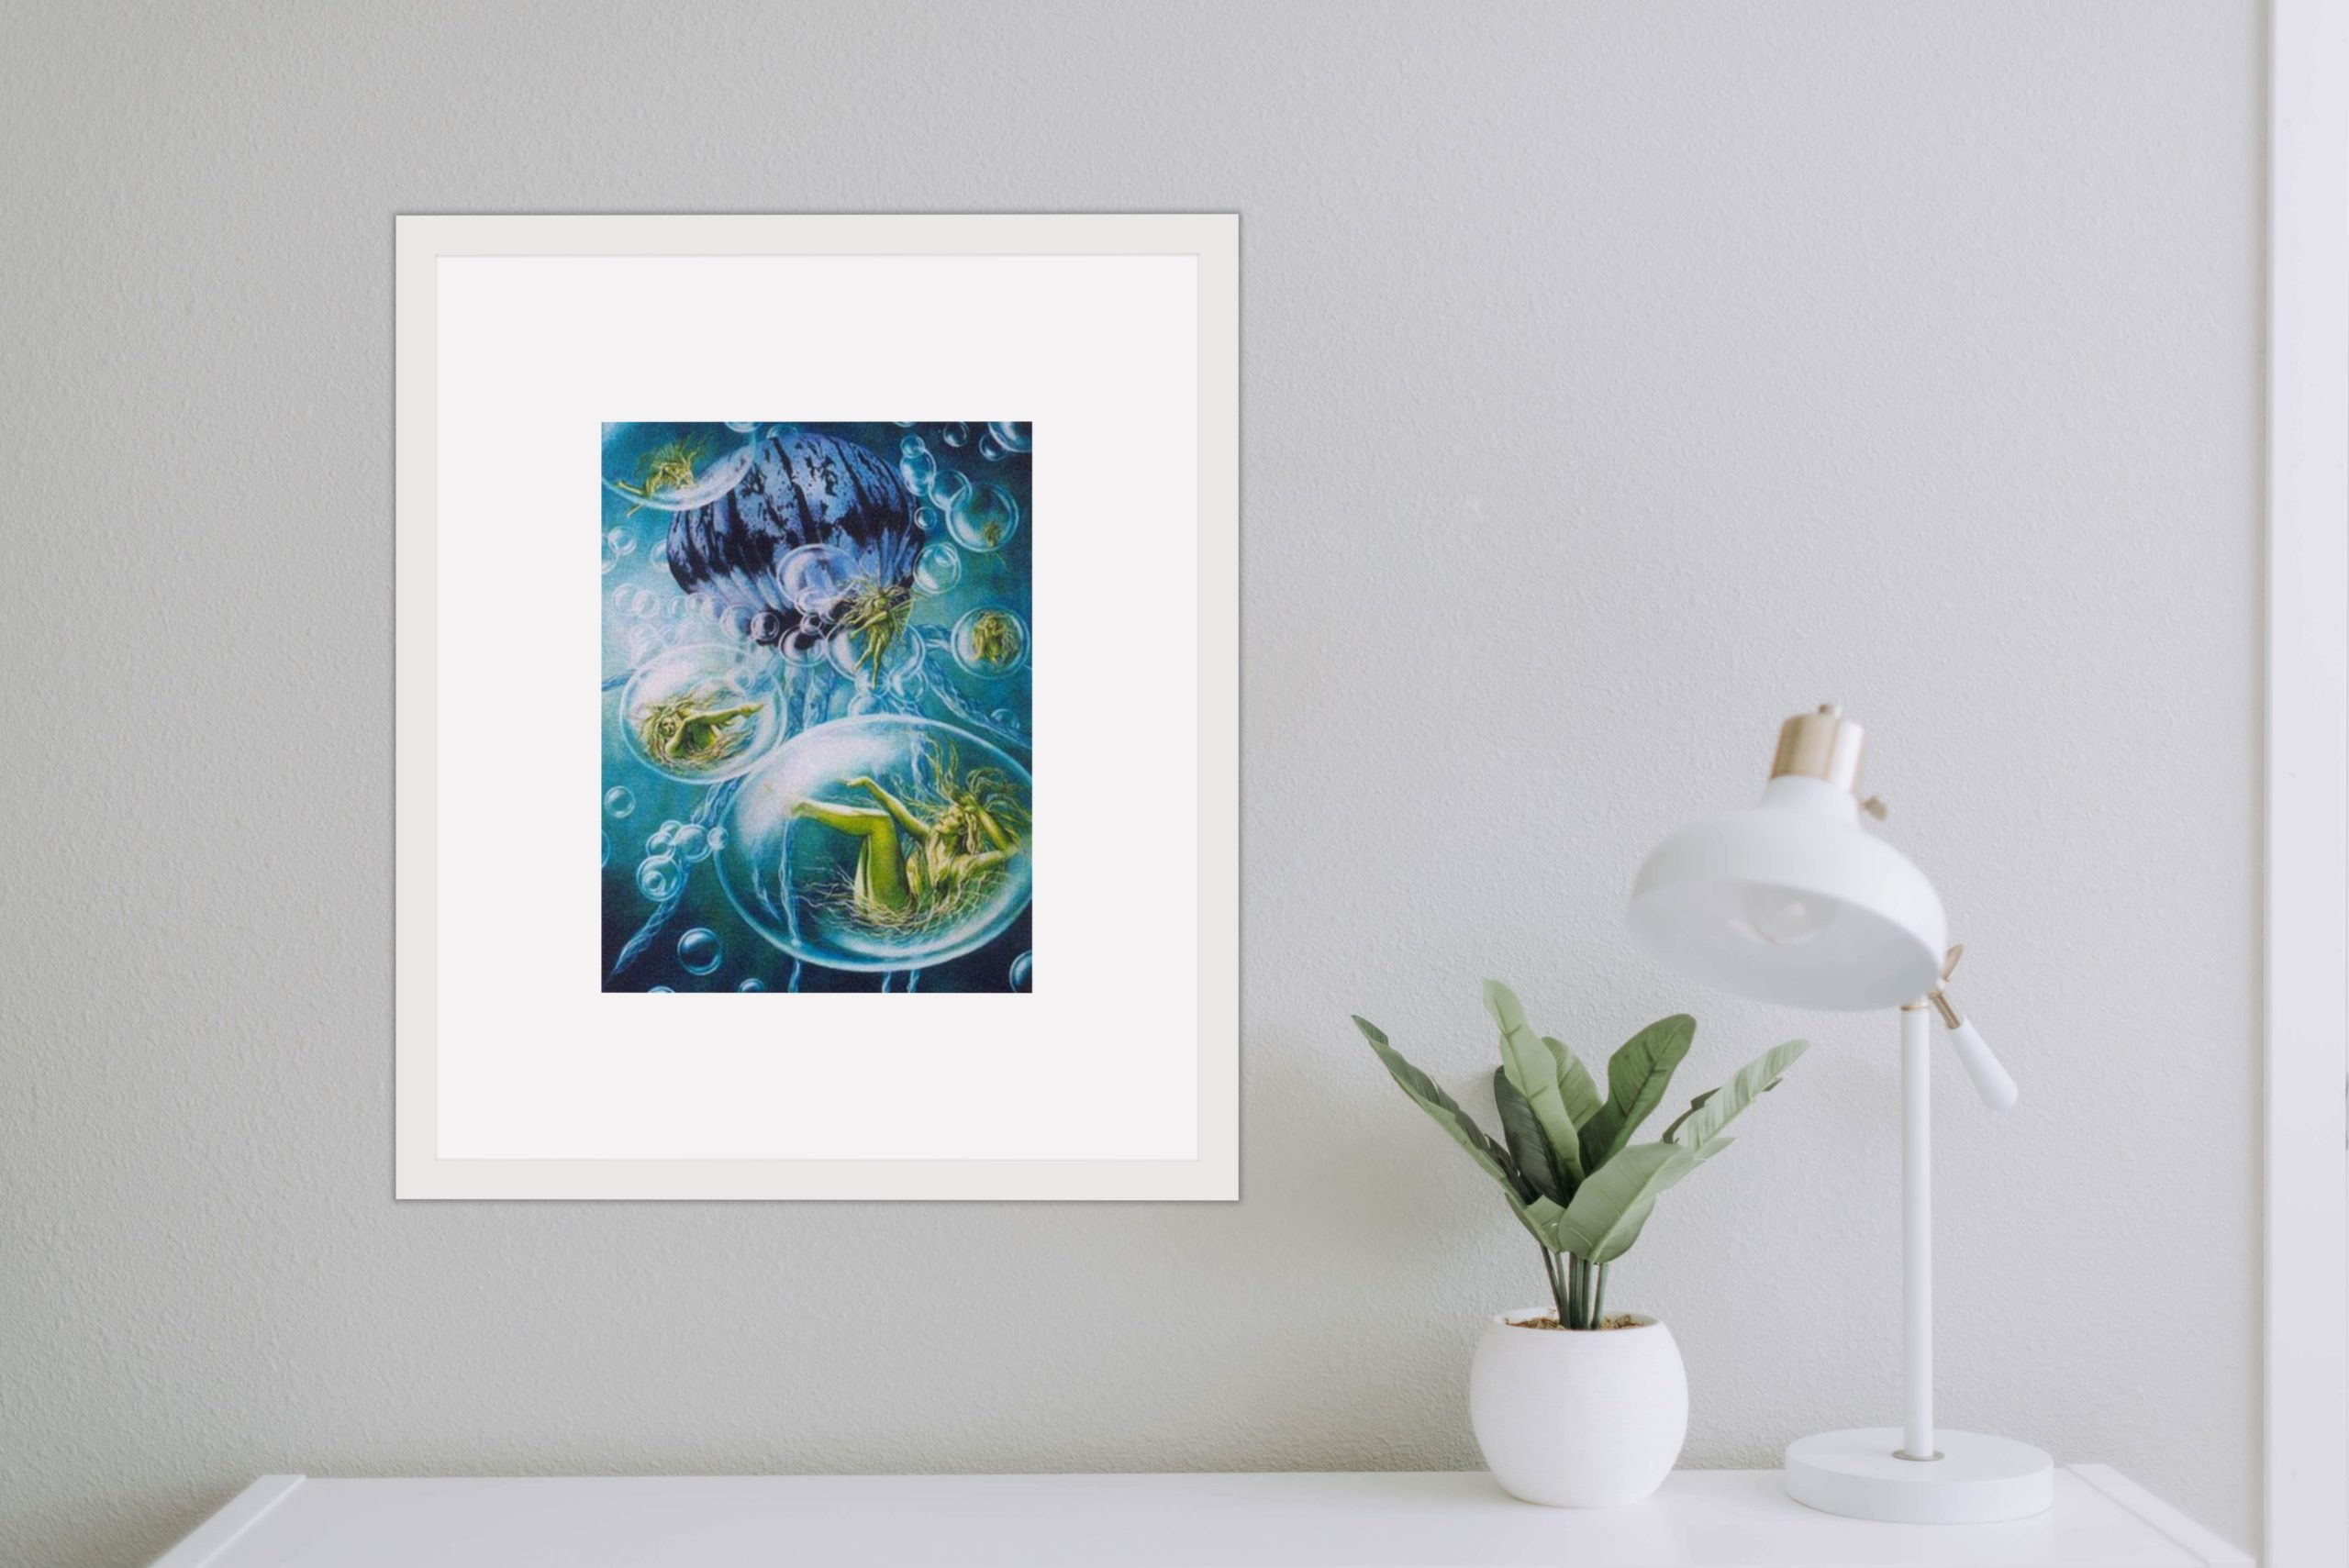 Limited Edition Prints - Water Fairy On Wall